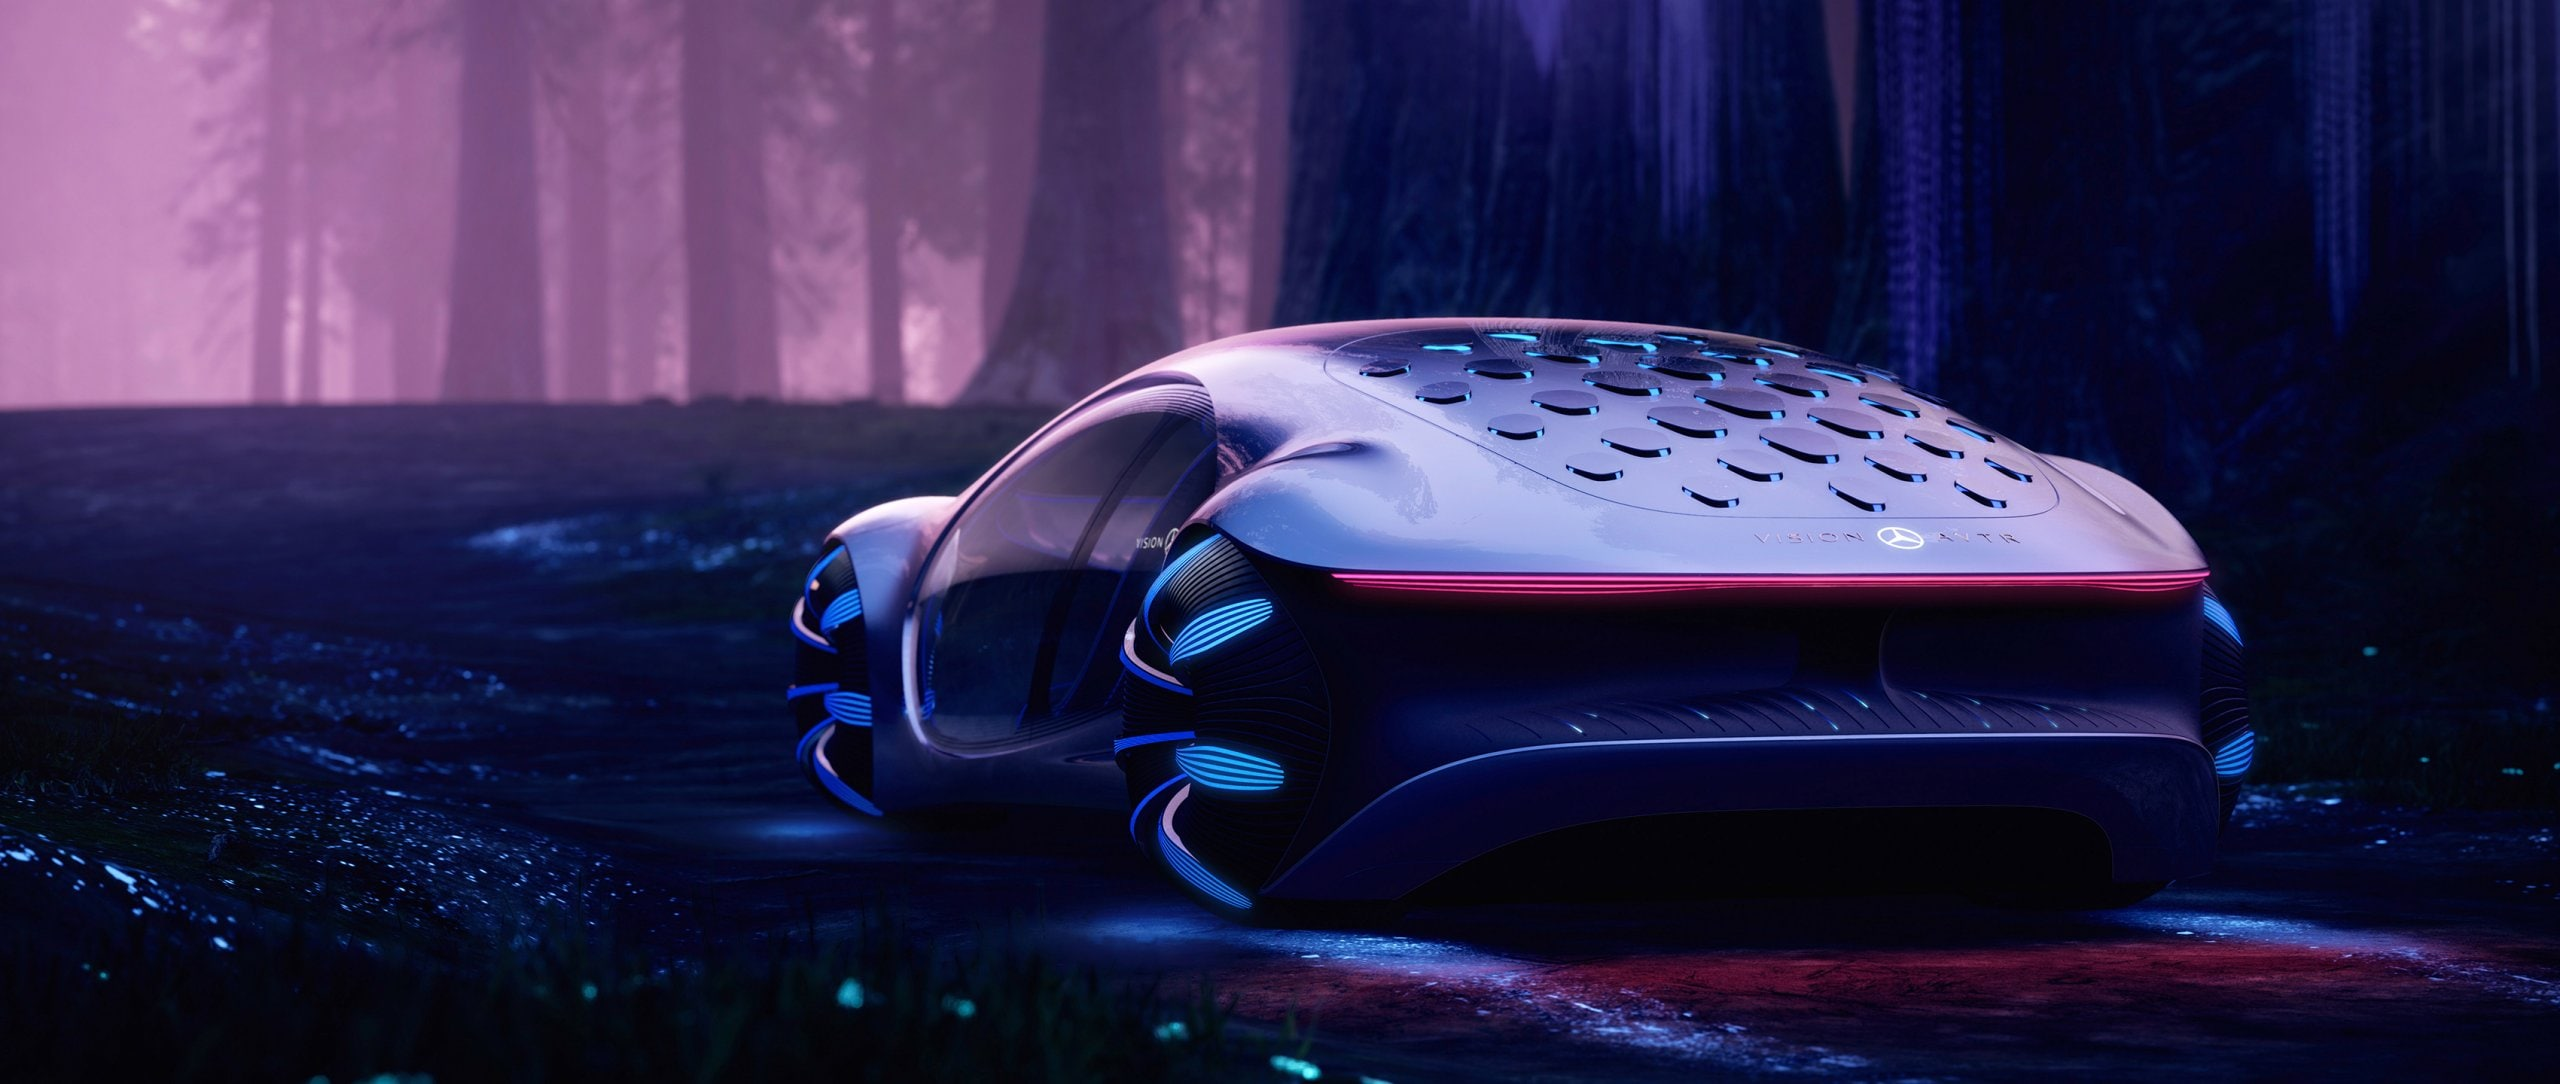 Rear view of the Mercedes-Benz VISION AVTR in a forest – inspired by AVATAR